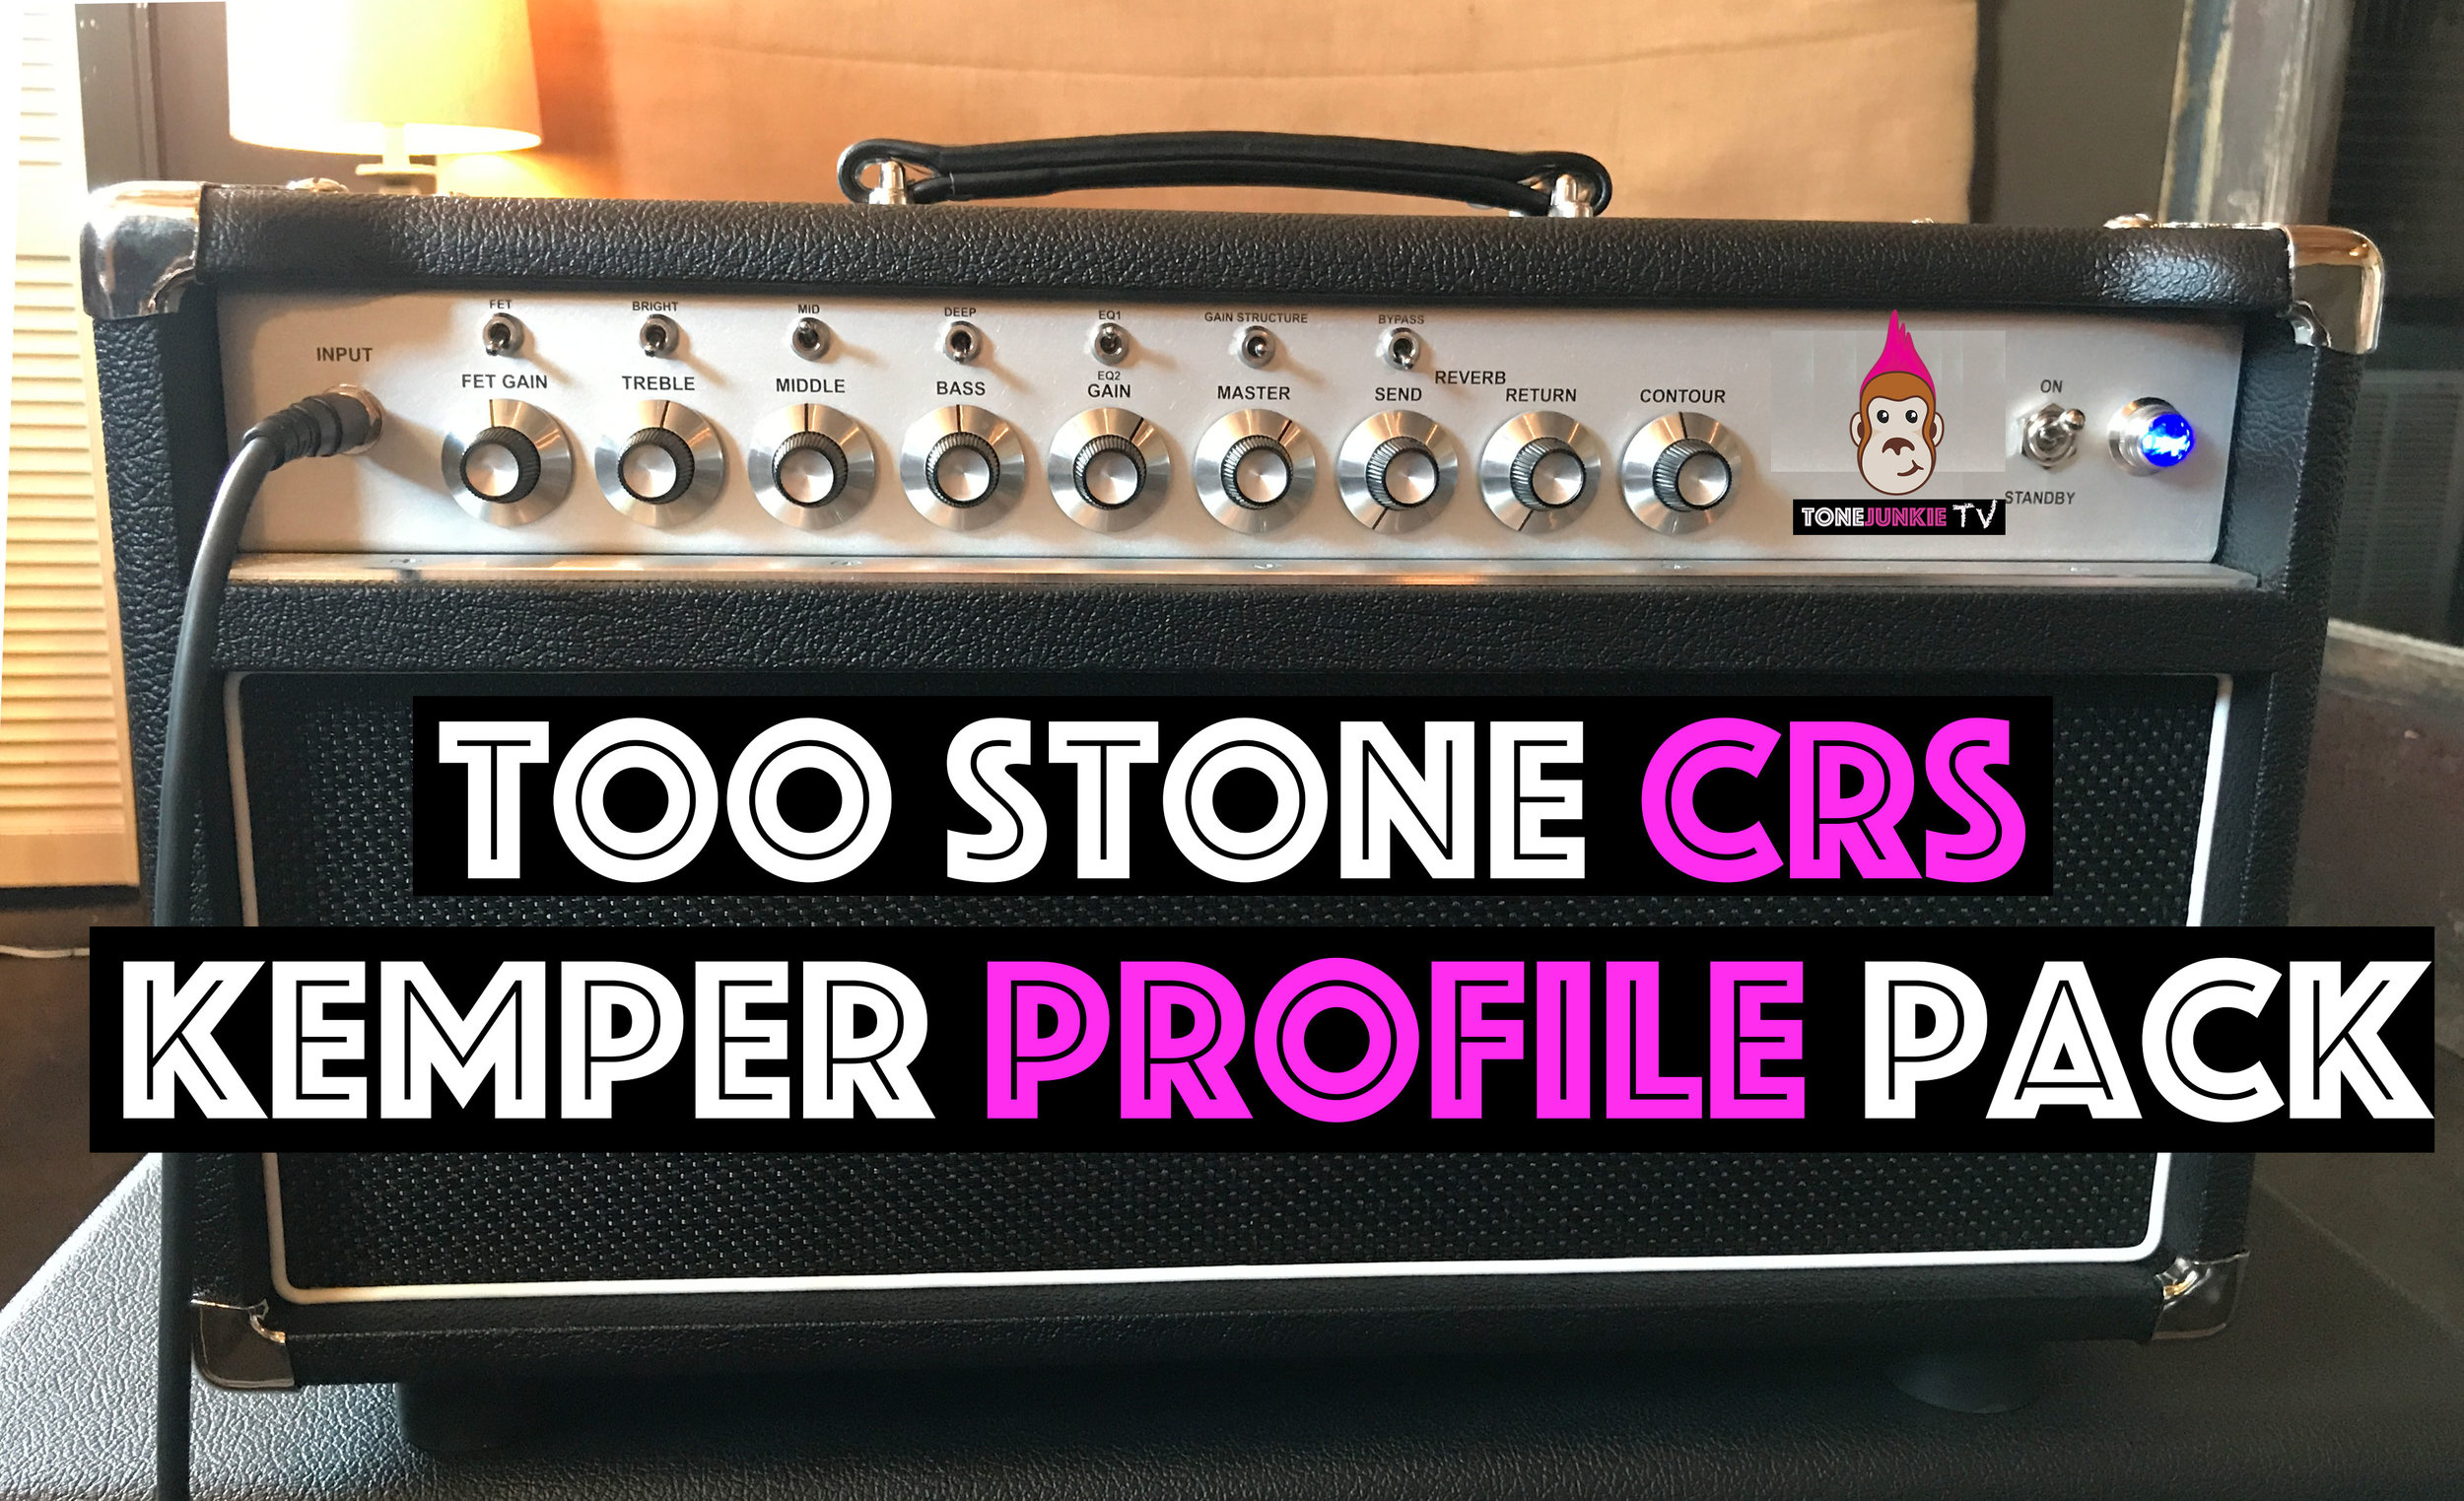 Too Stone CRS - The Too Stone CRS is an ideal pedal platform. Think Steel String Singer meets a Super Reverb. The Too Stone CRS Kemper Profile Pack features 27 profiles from high headroom cleans that can produce 3d swirling cleans with glassy highs and deep lows to overdriven blues and roots music. Profiles labeled